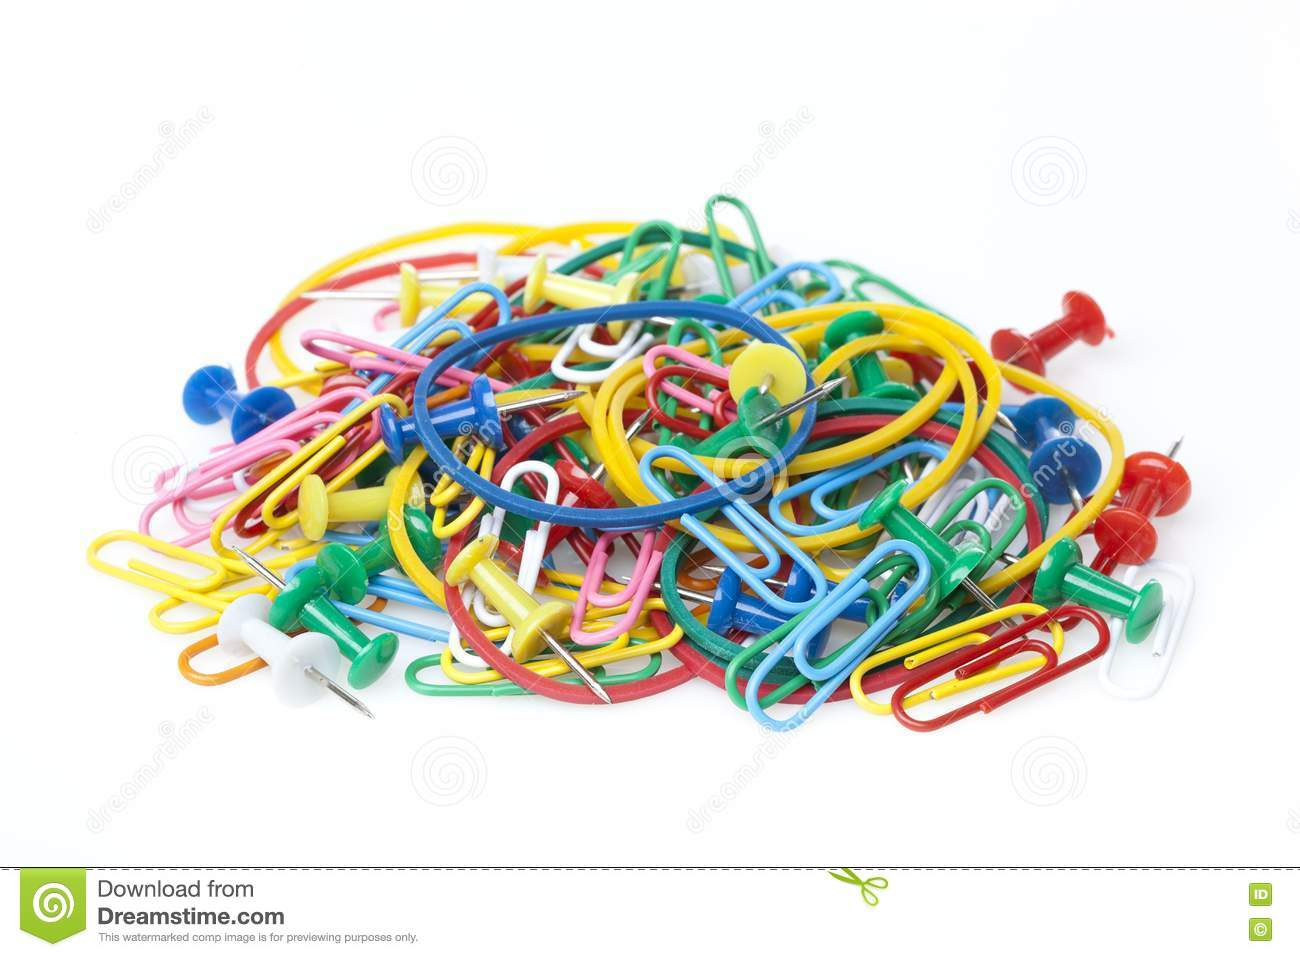 A Group Of Colorful Office Supplies Stock Image Image